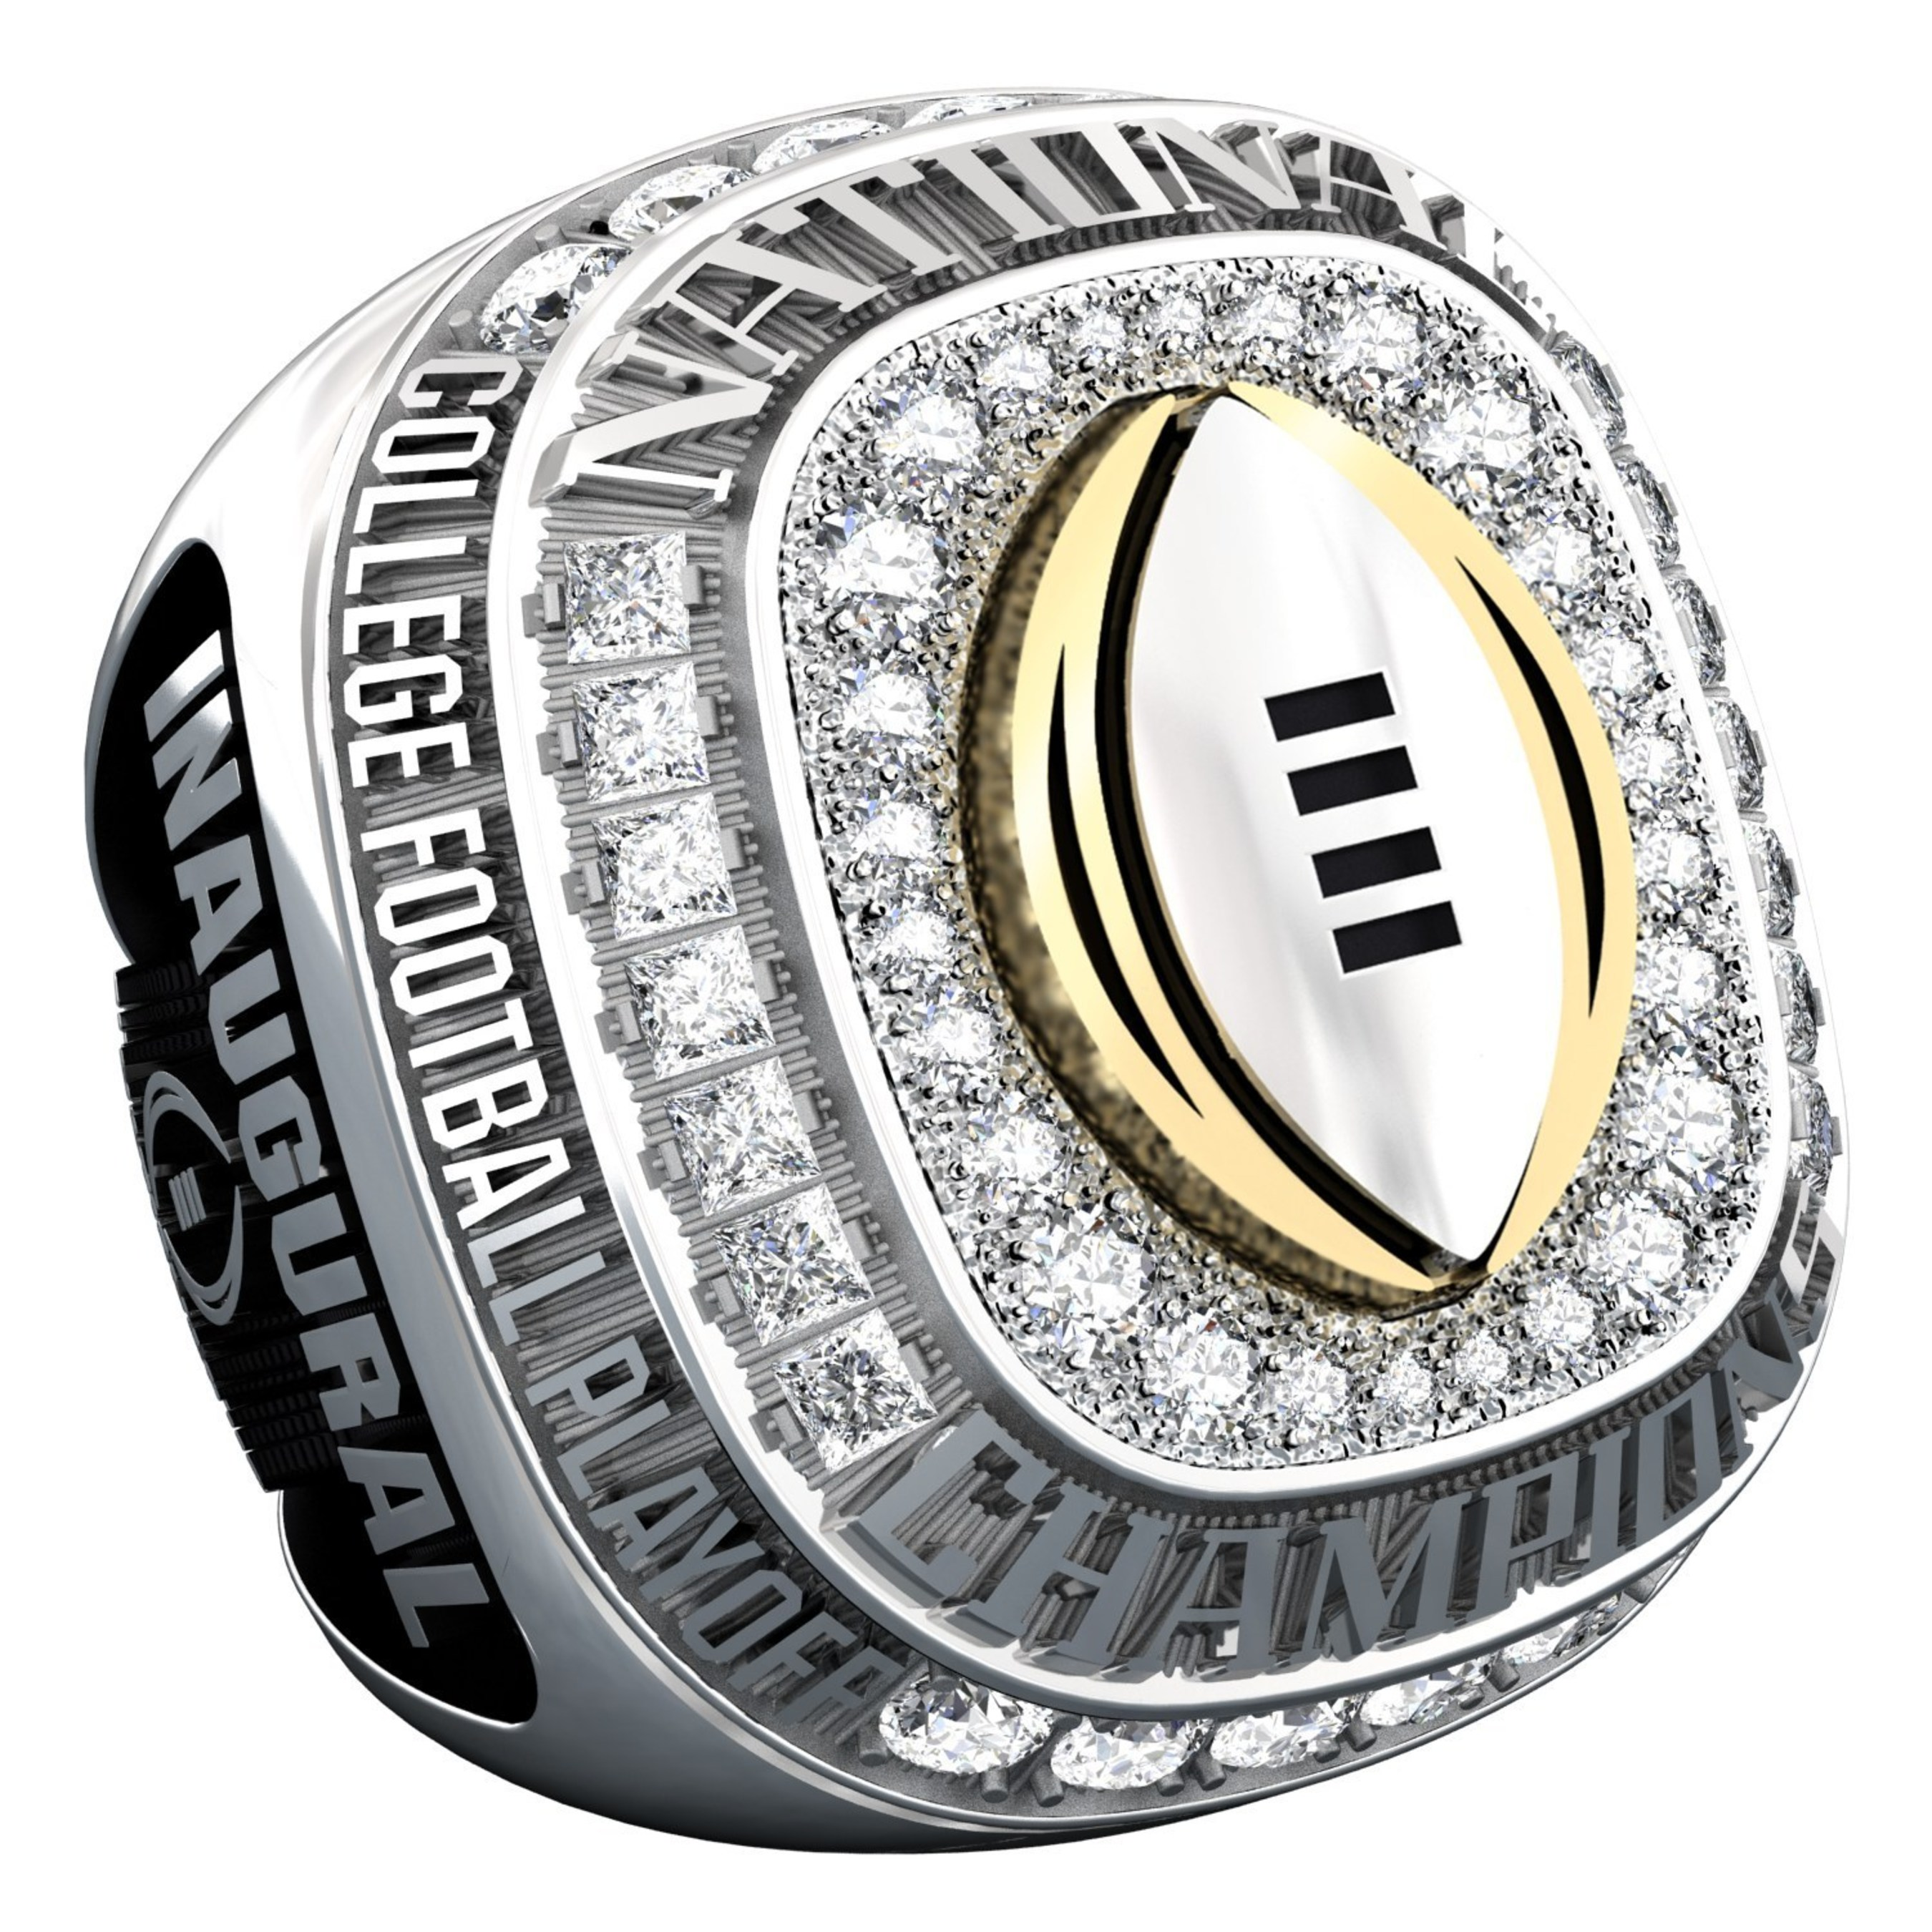 jostens collaborates playoff rings championship college national ring inaugural state releases to texas football news with present